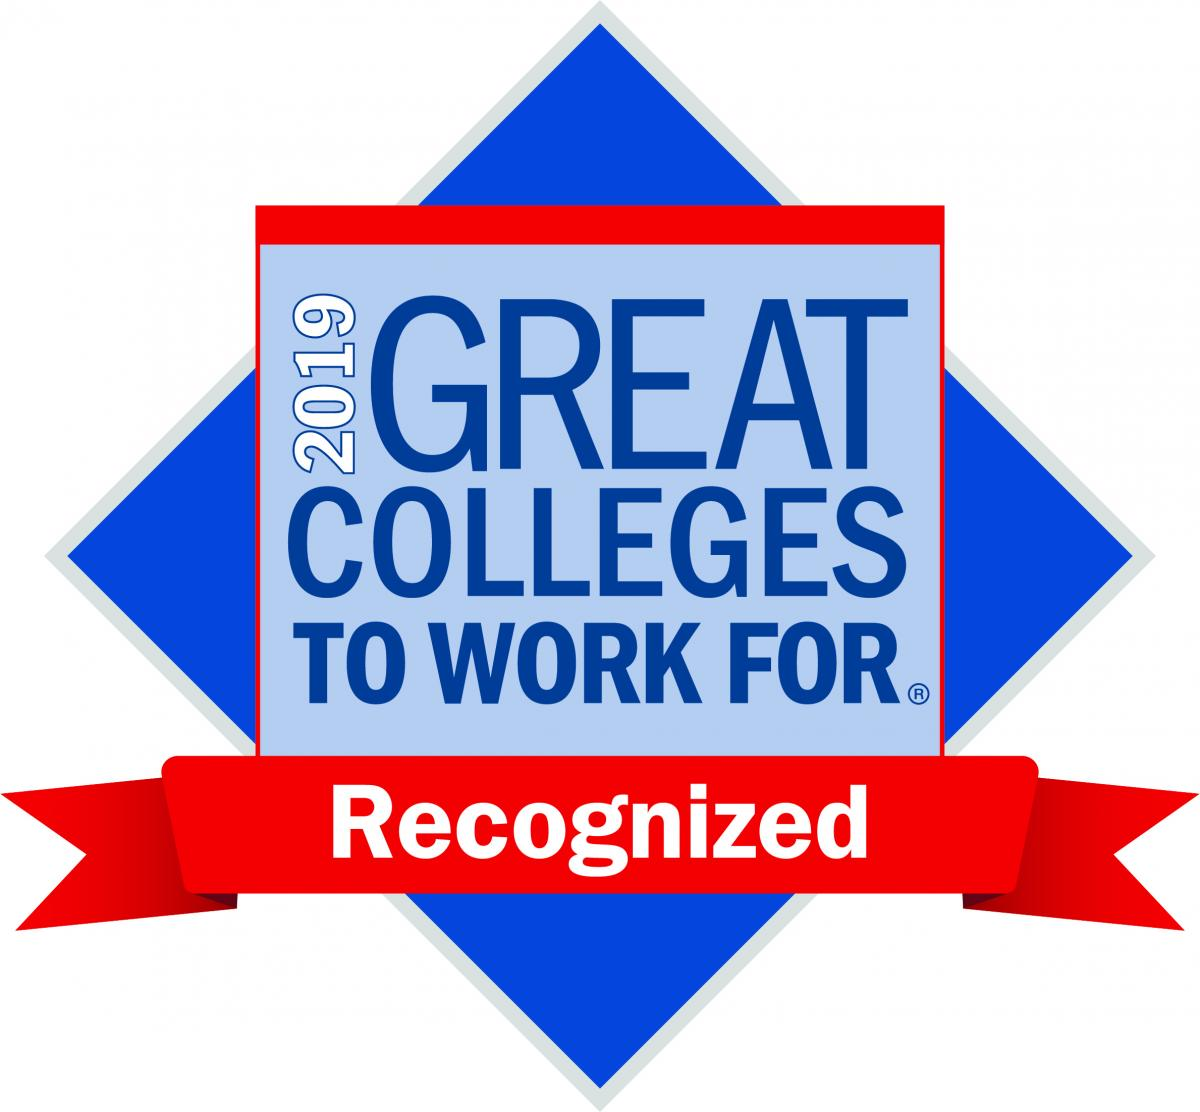 2019 Great Colleges to Work for Recognized